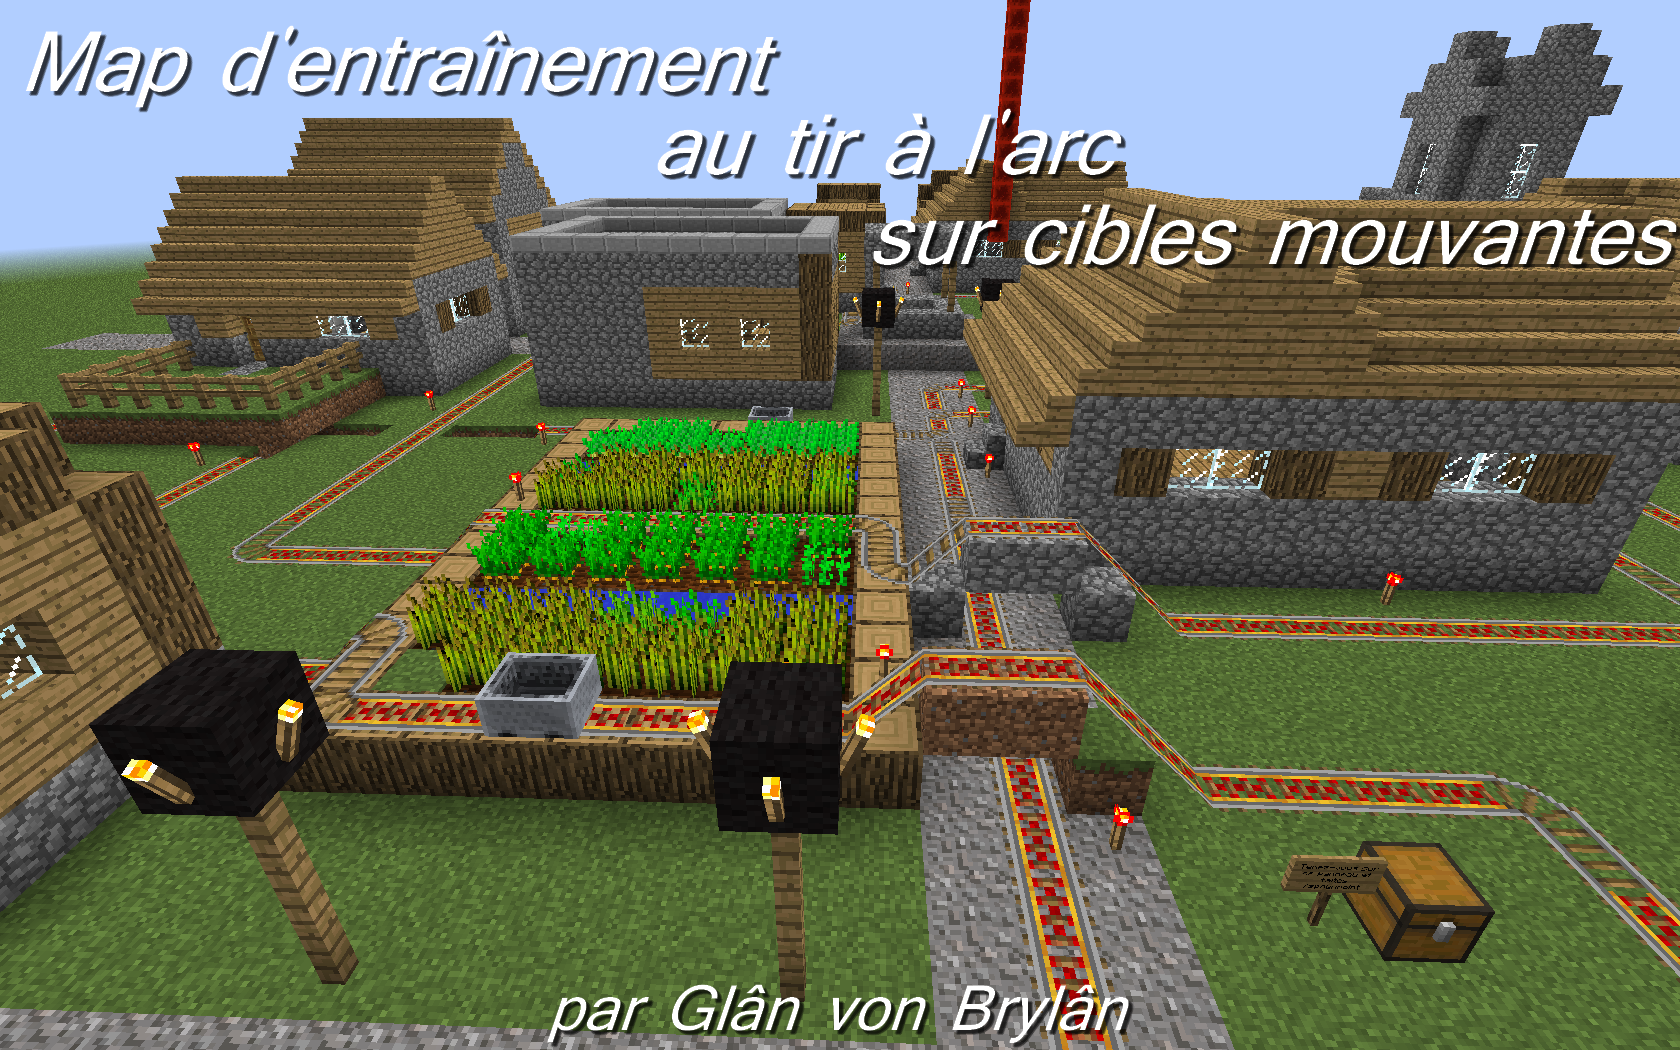 minecraft map entraînement au tir à l'arc